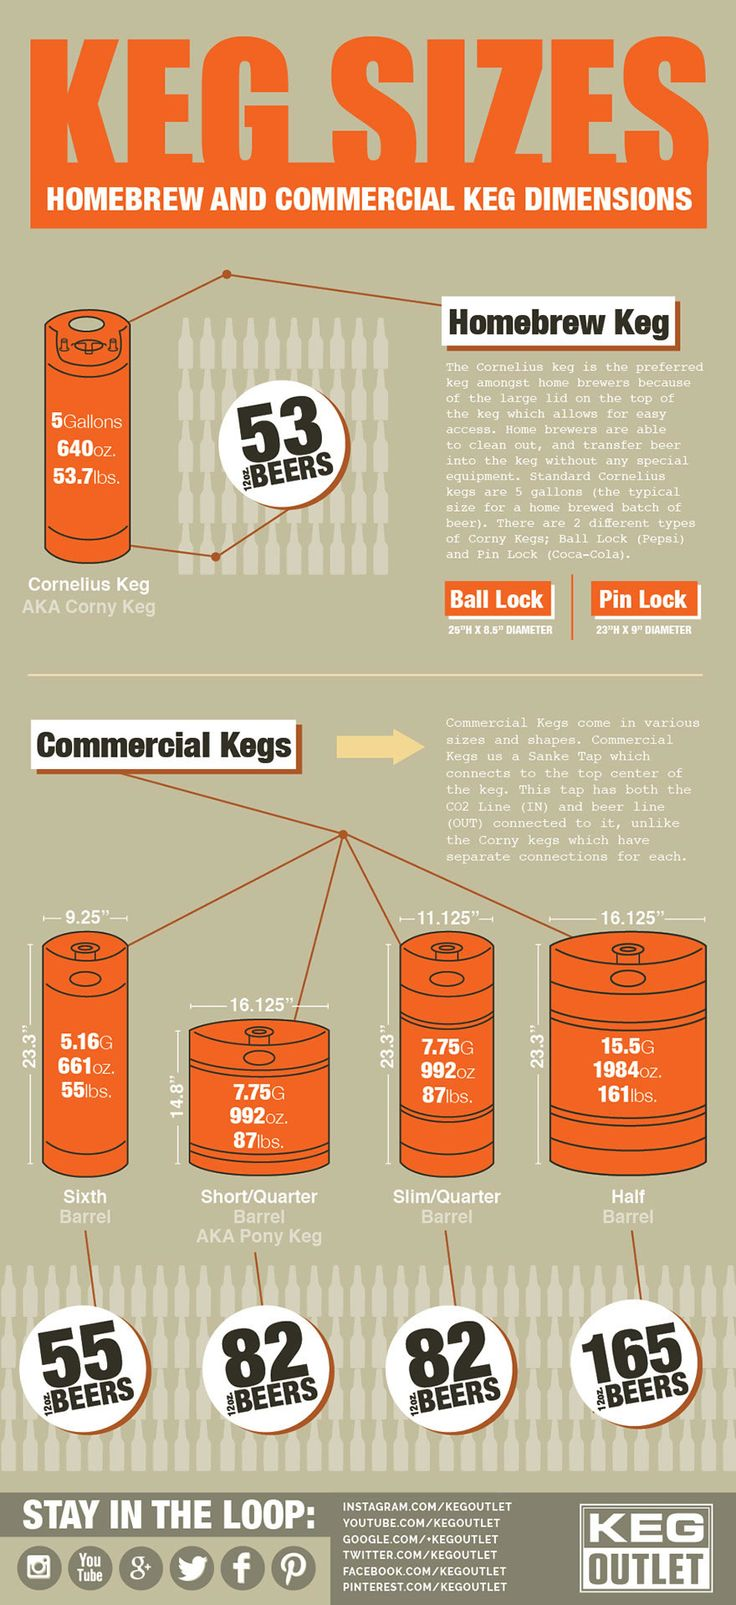 Keg Sizes - Homebrew and Commercial Keg Dimensions (Infographic)